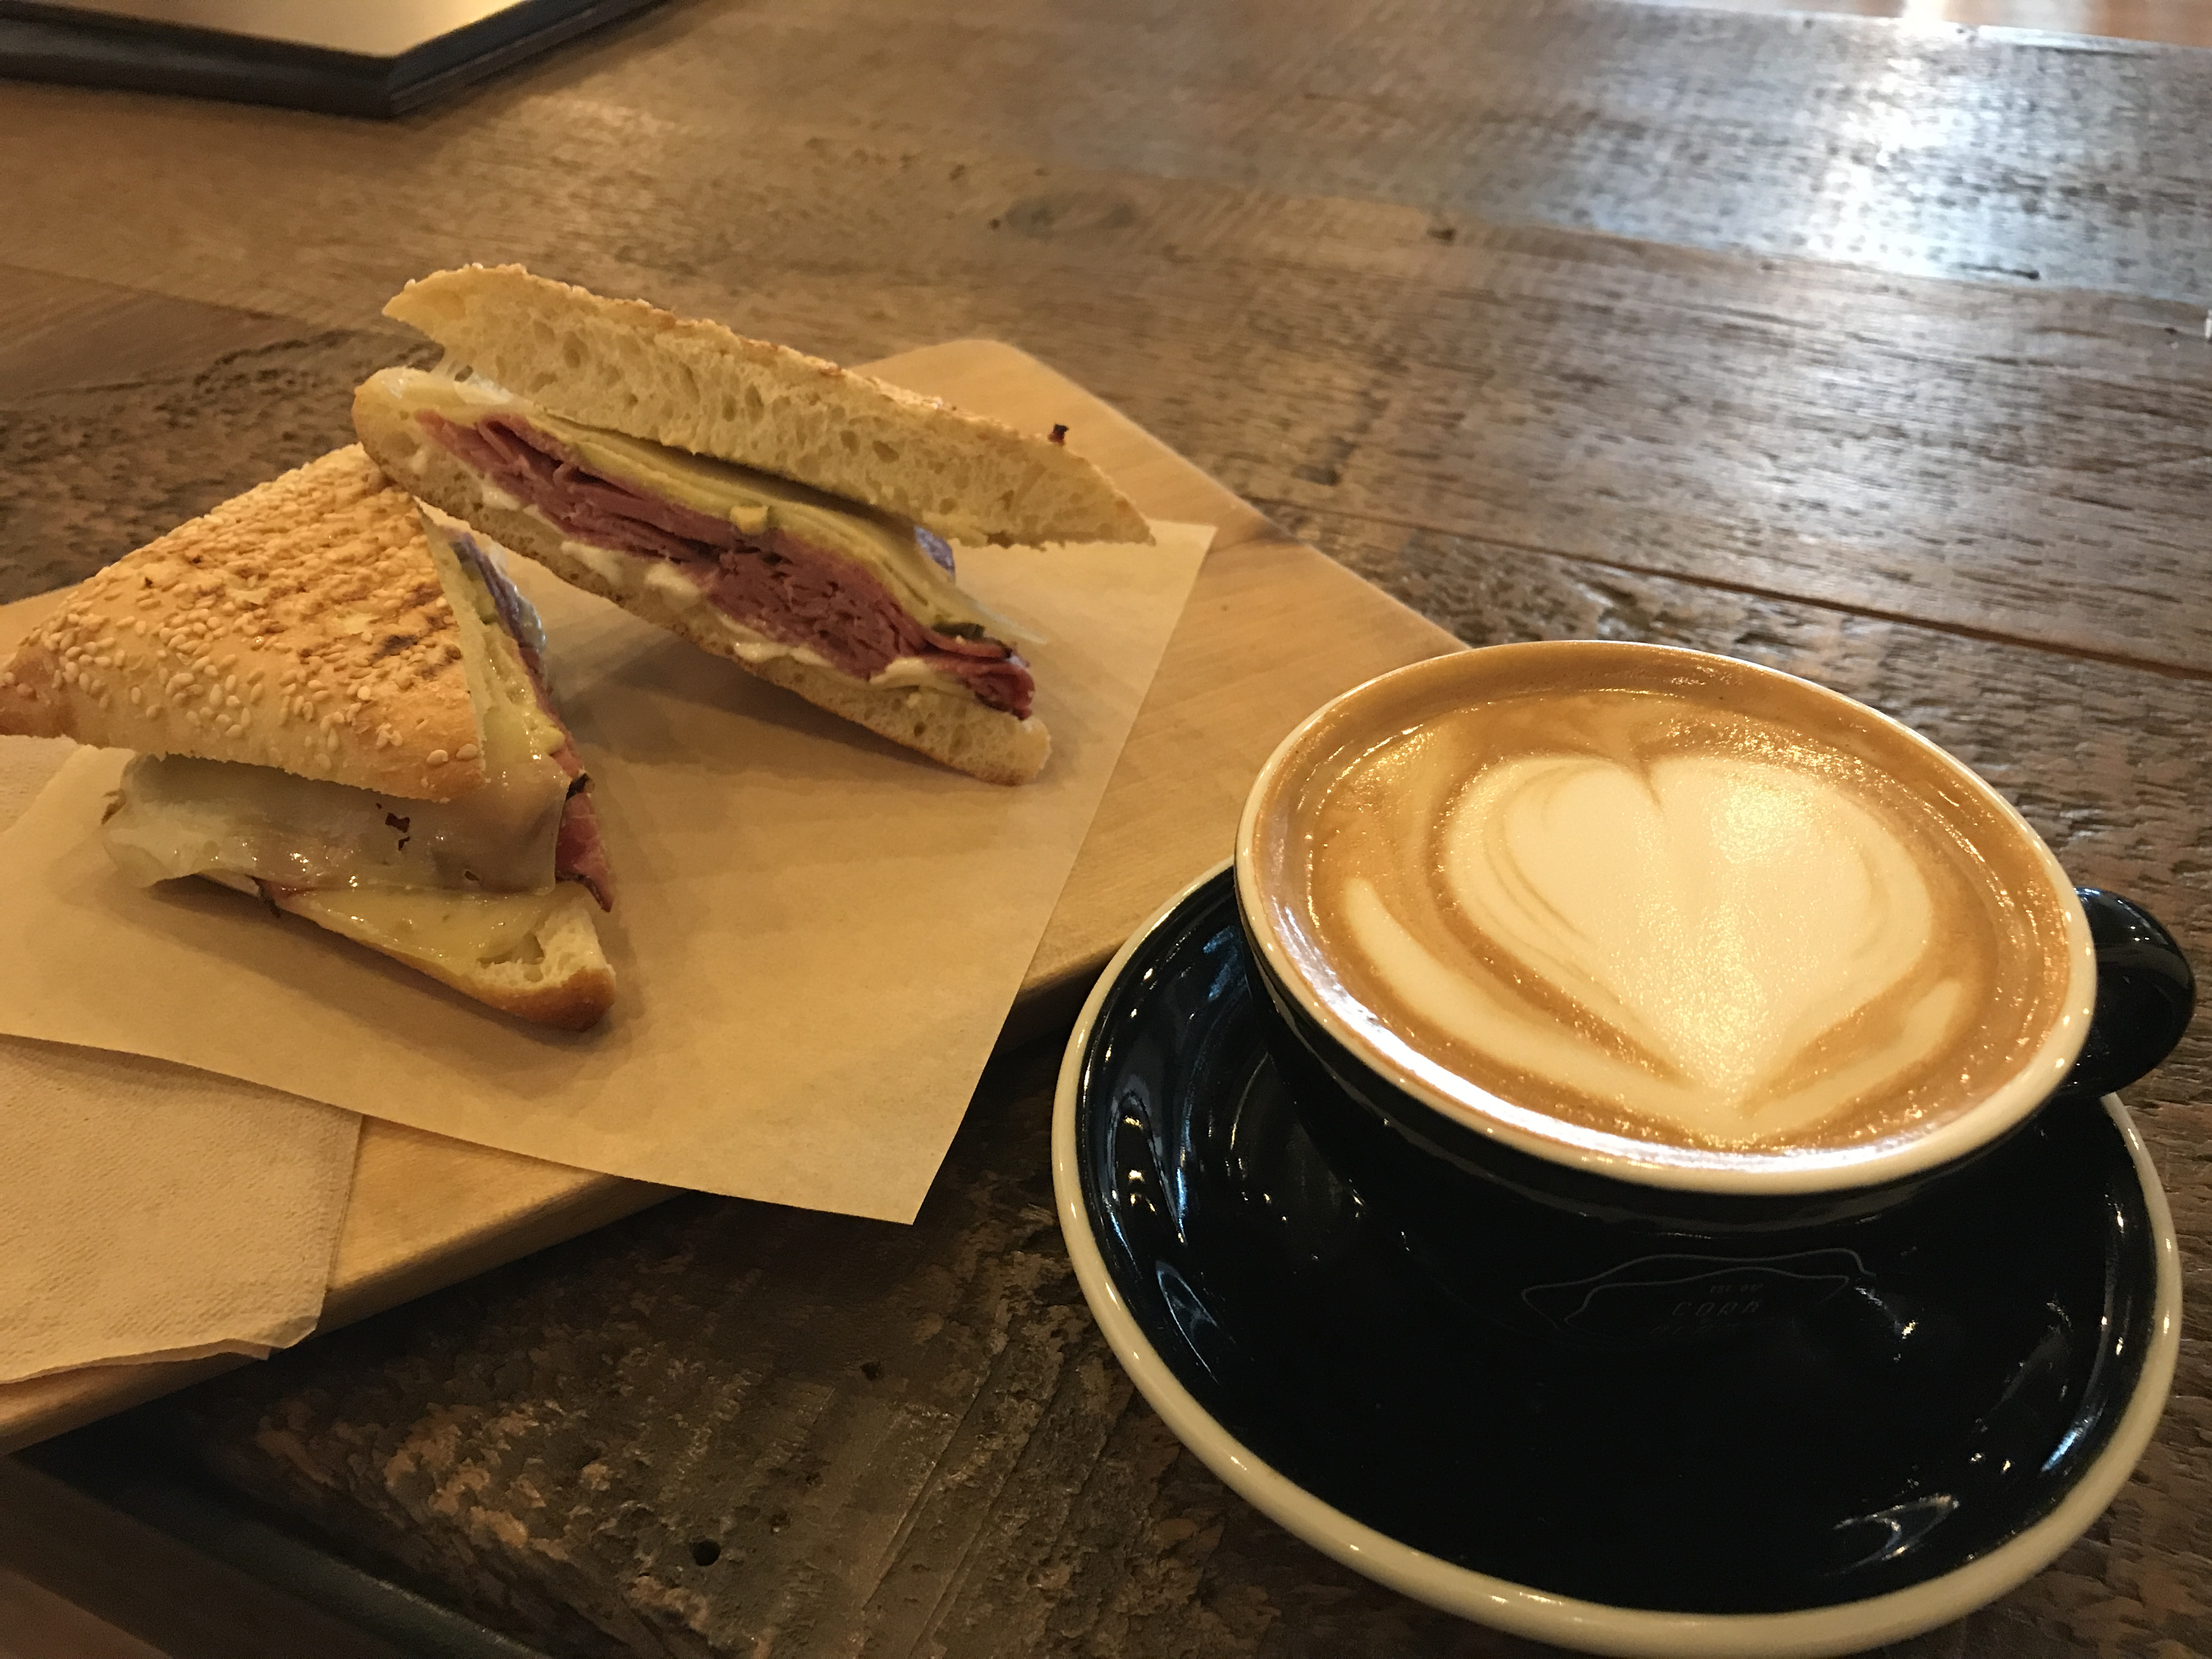 Sandwich and cup of coffee